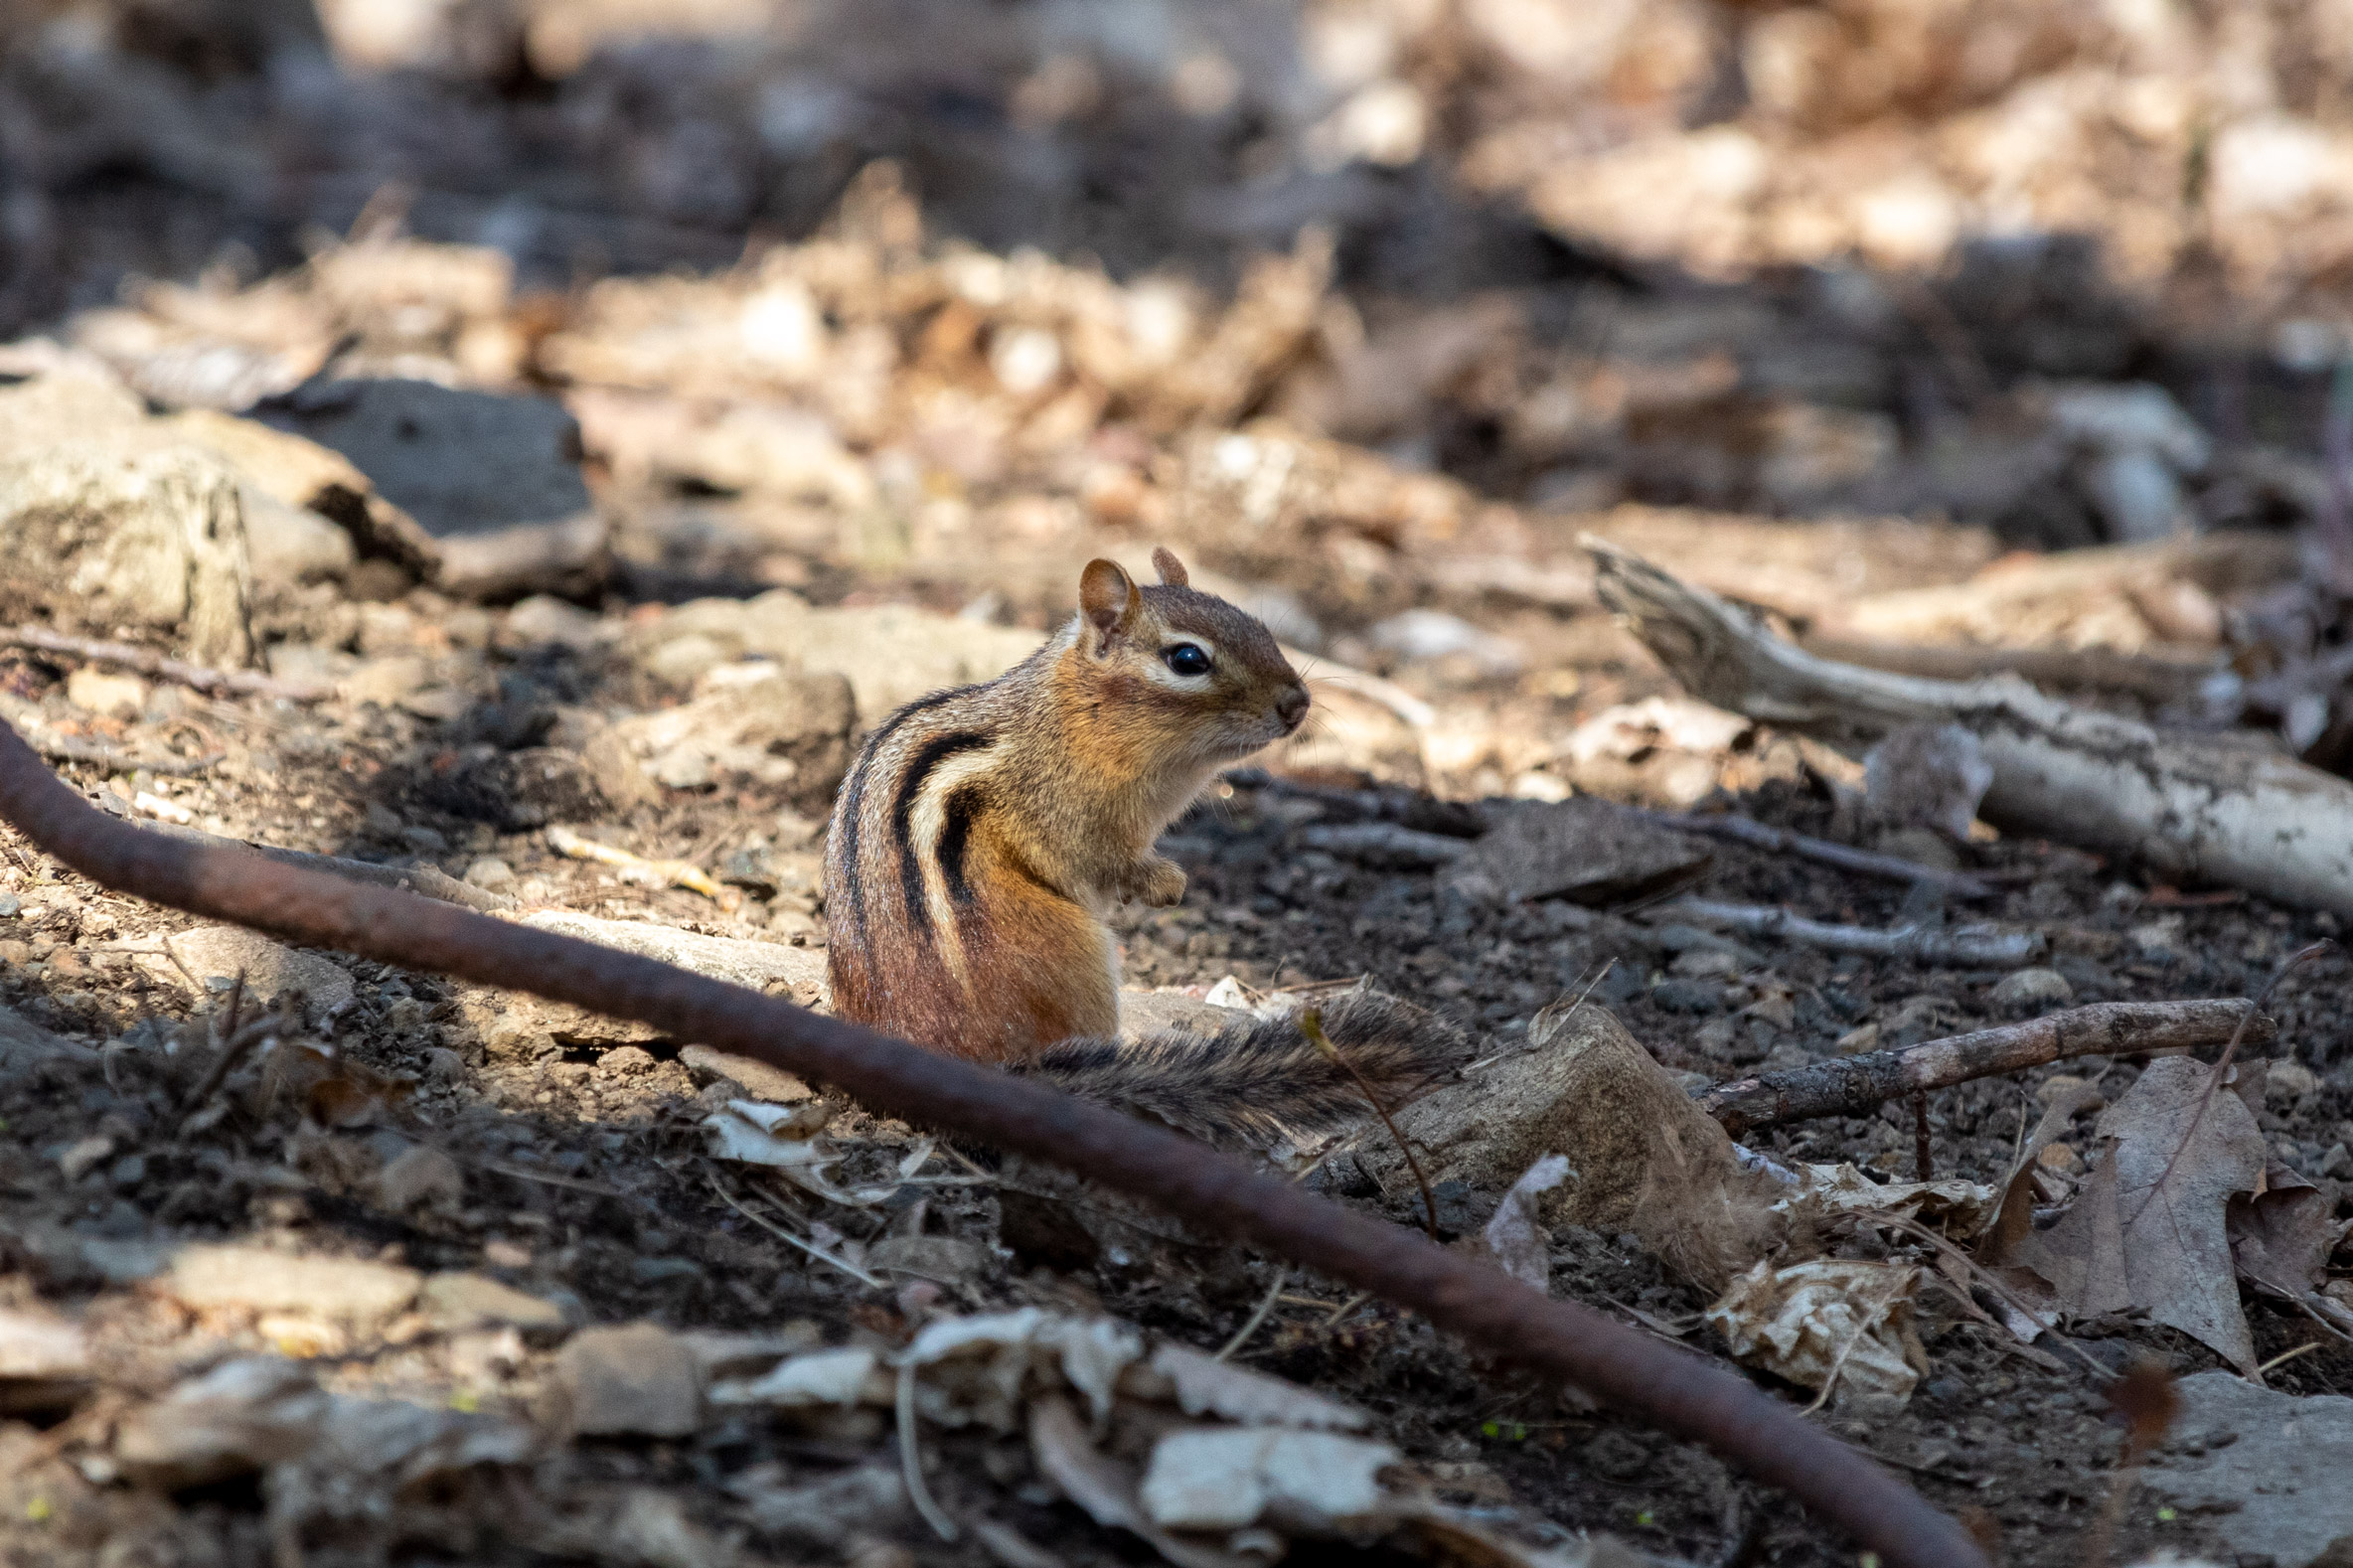 Chipmunk crouching on the forest floor